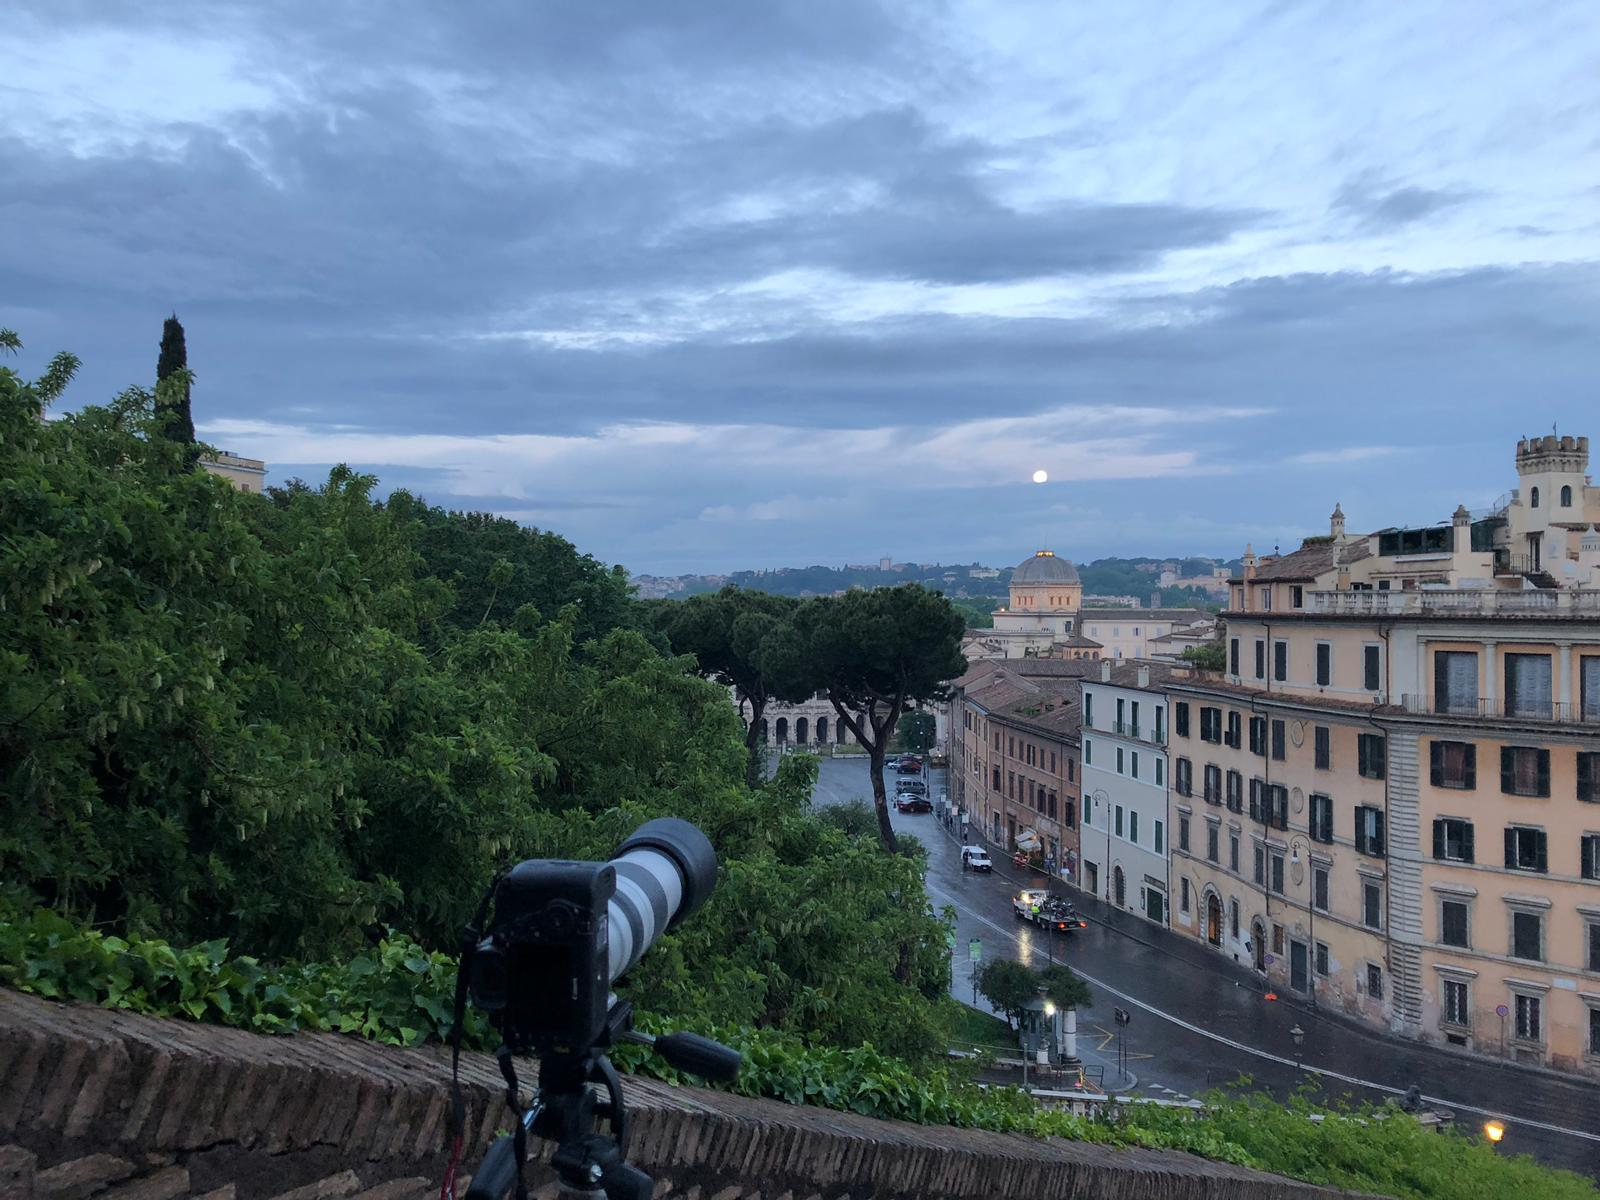 Ready to image, while the Moon is visible trough clouds